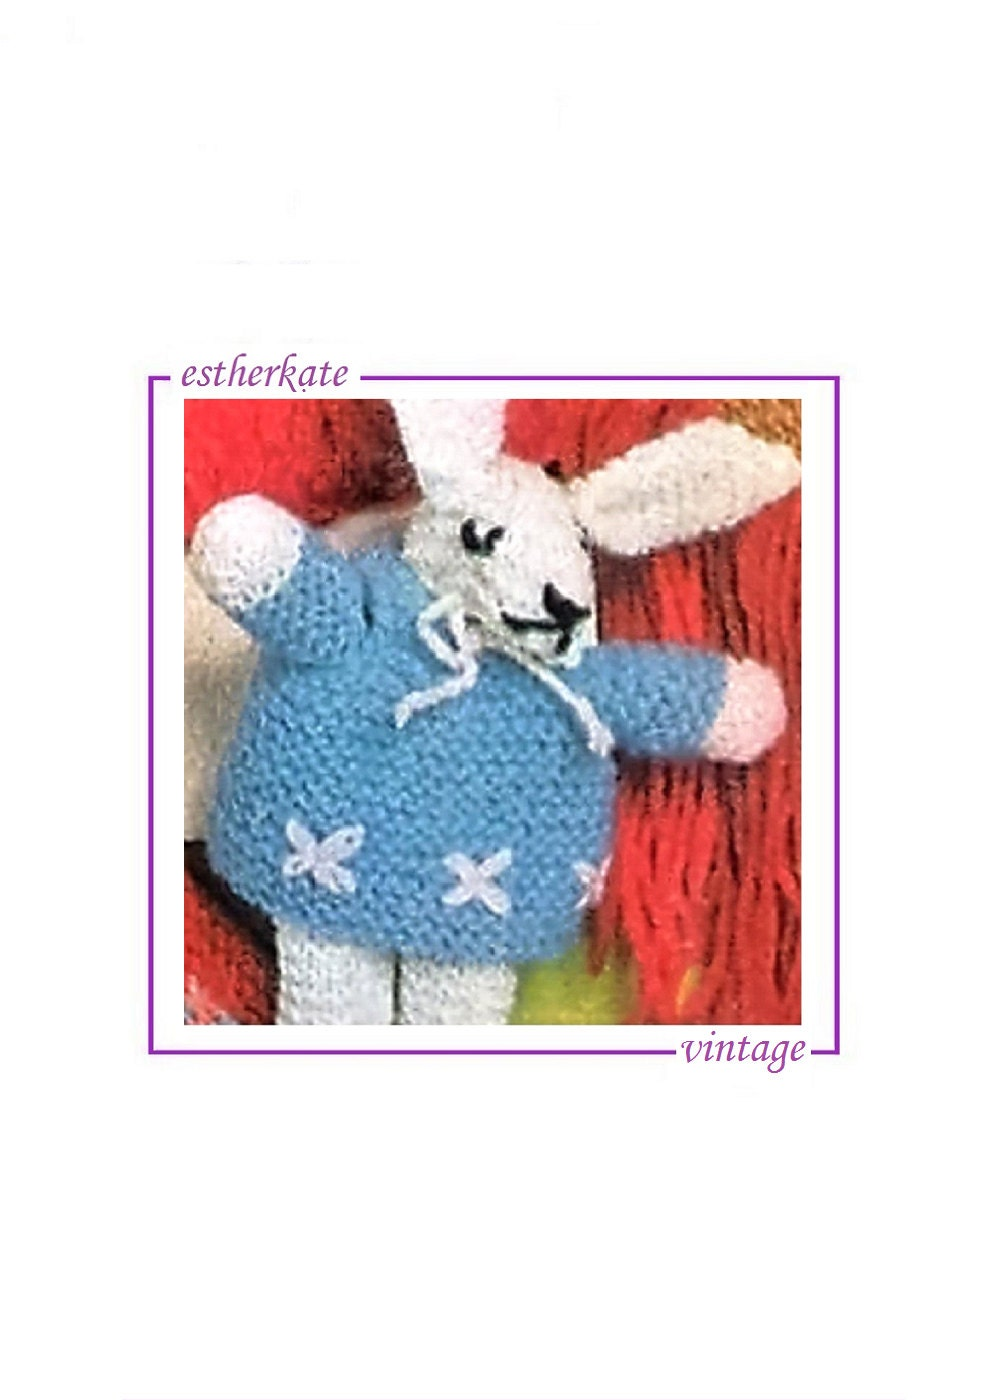 VINTAGE knitting pattern pdf Easter knitted bunny doll toy 6 inch toy INSTANT DOWNLOAD